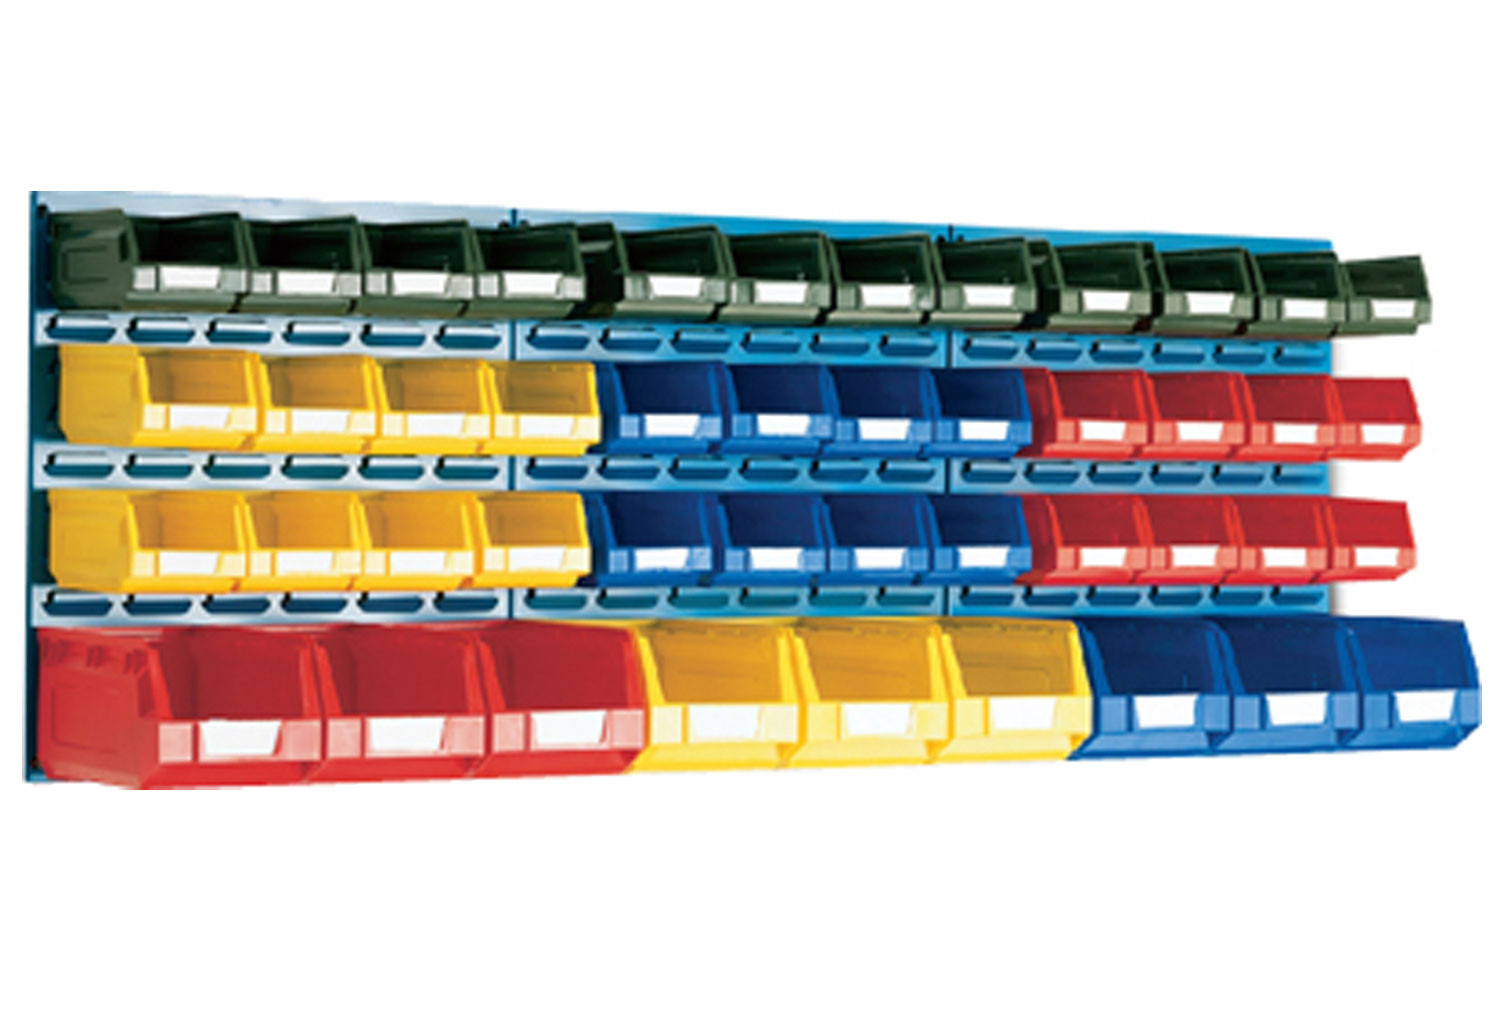 Louvre Panel Kit With 45 Bins